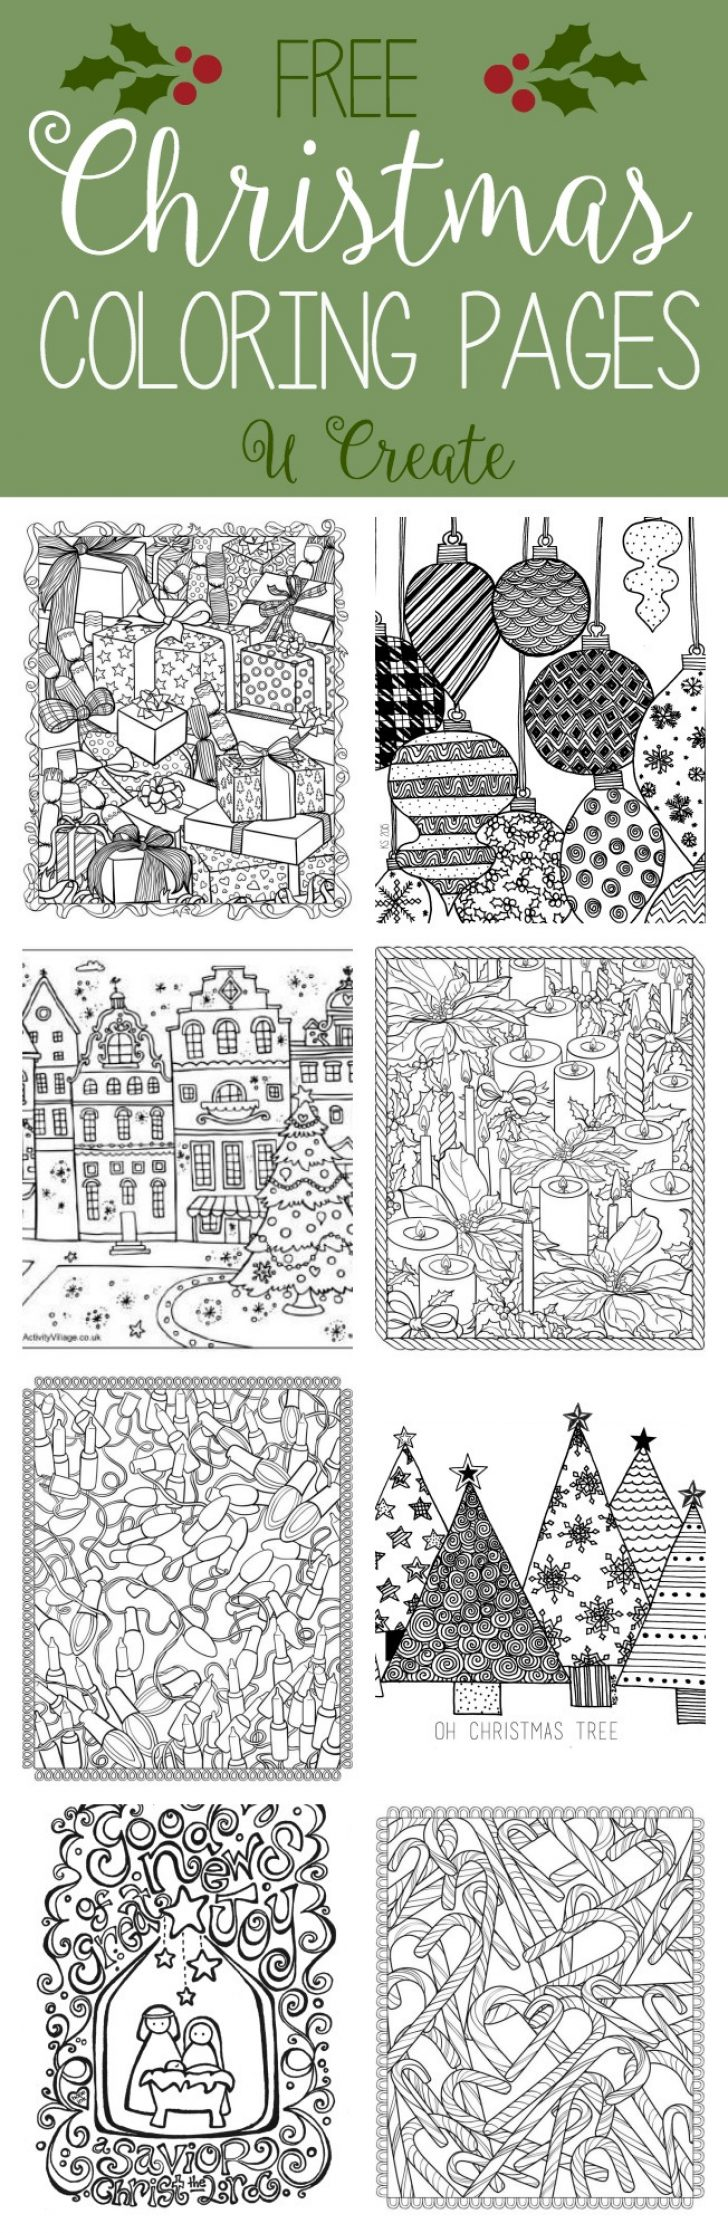 Permalink to Christmas Colouring Pages Download Free